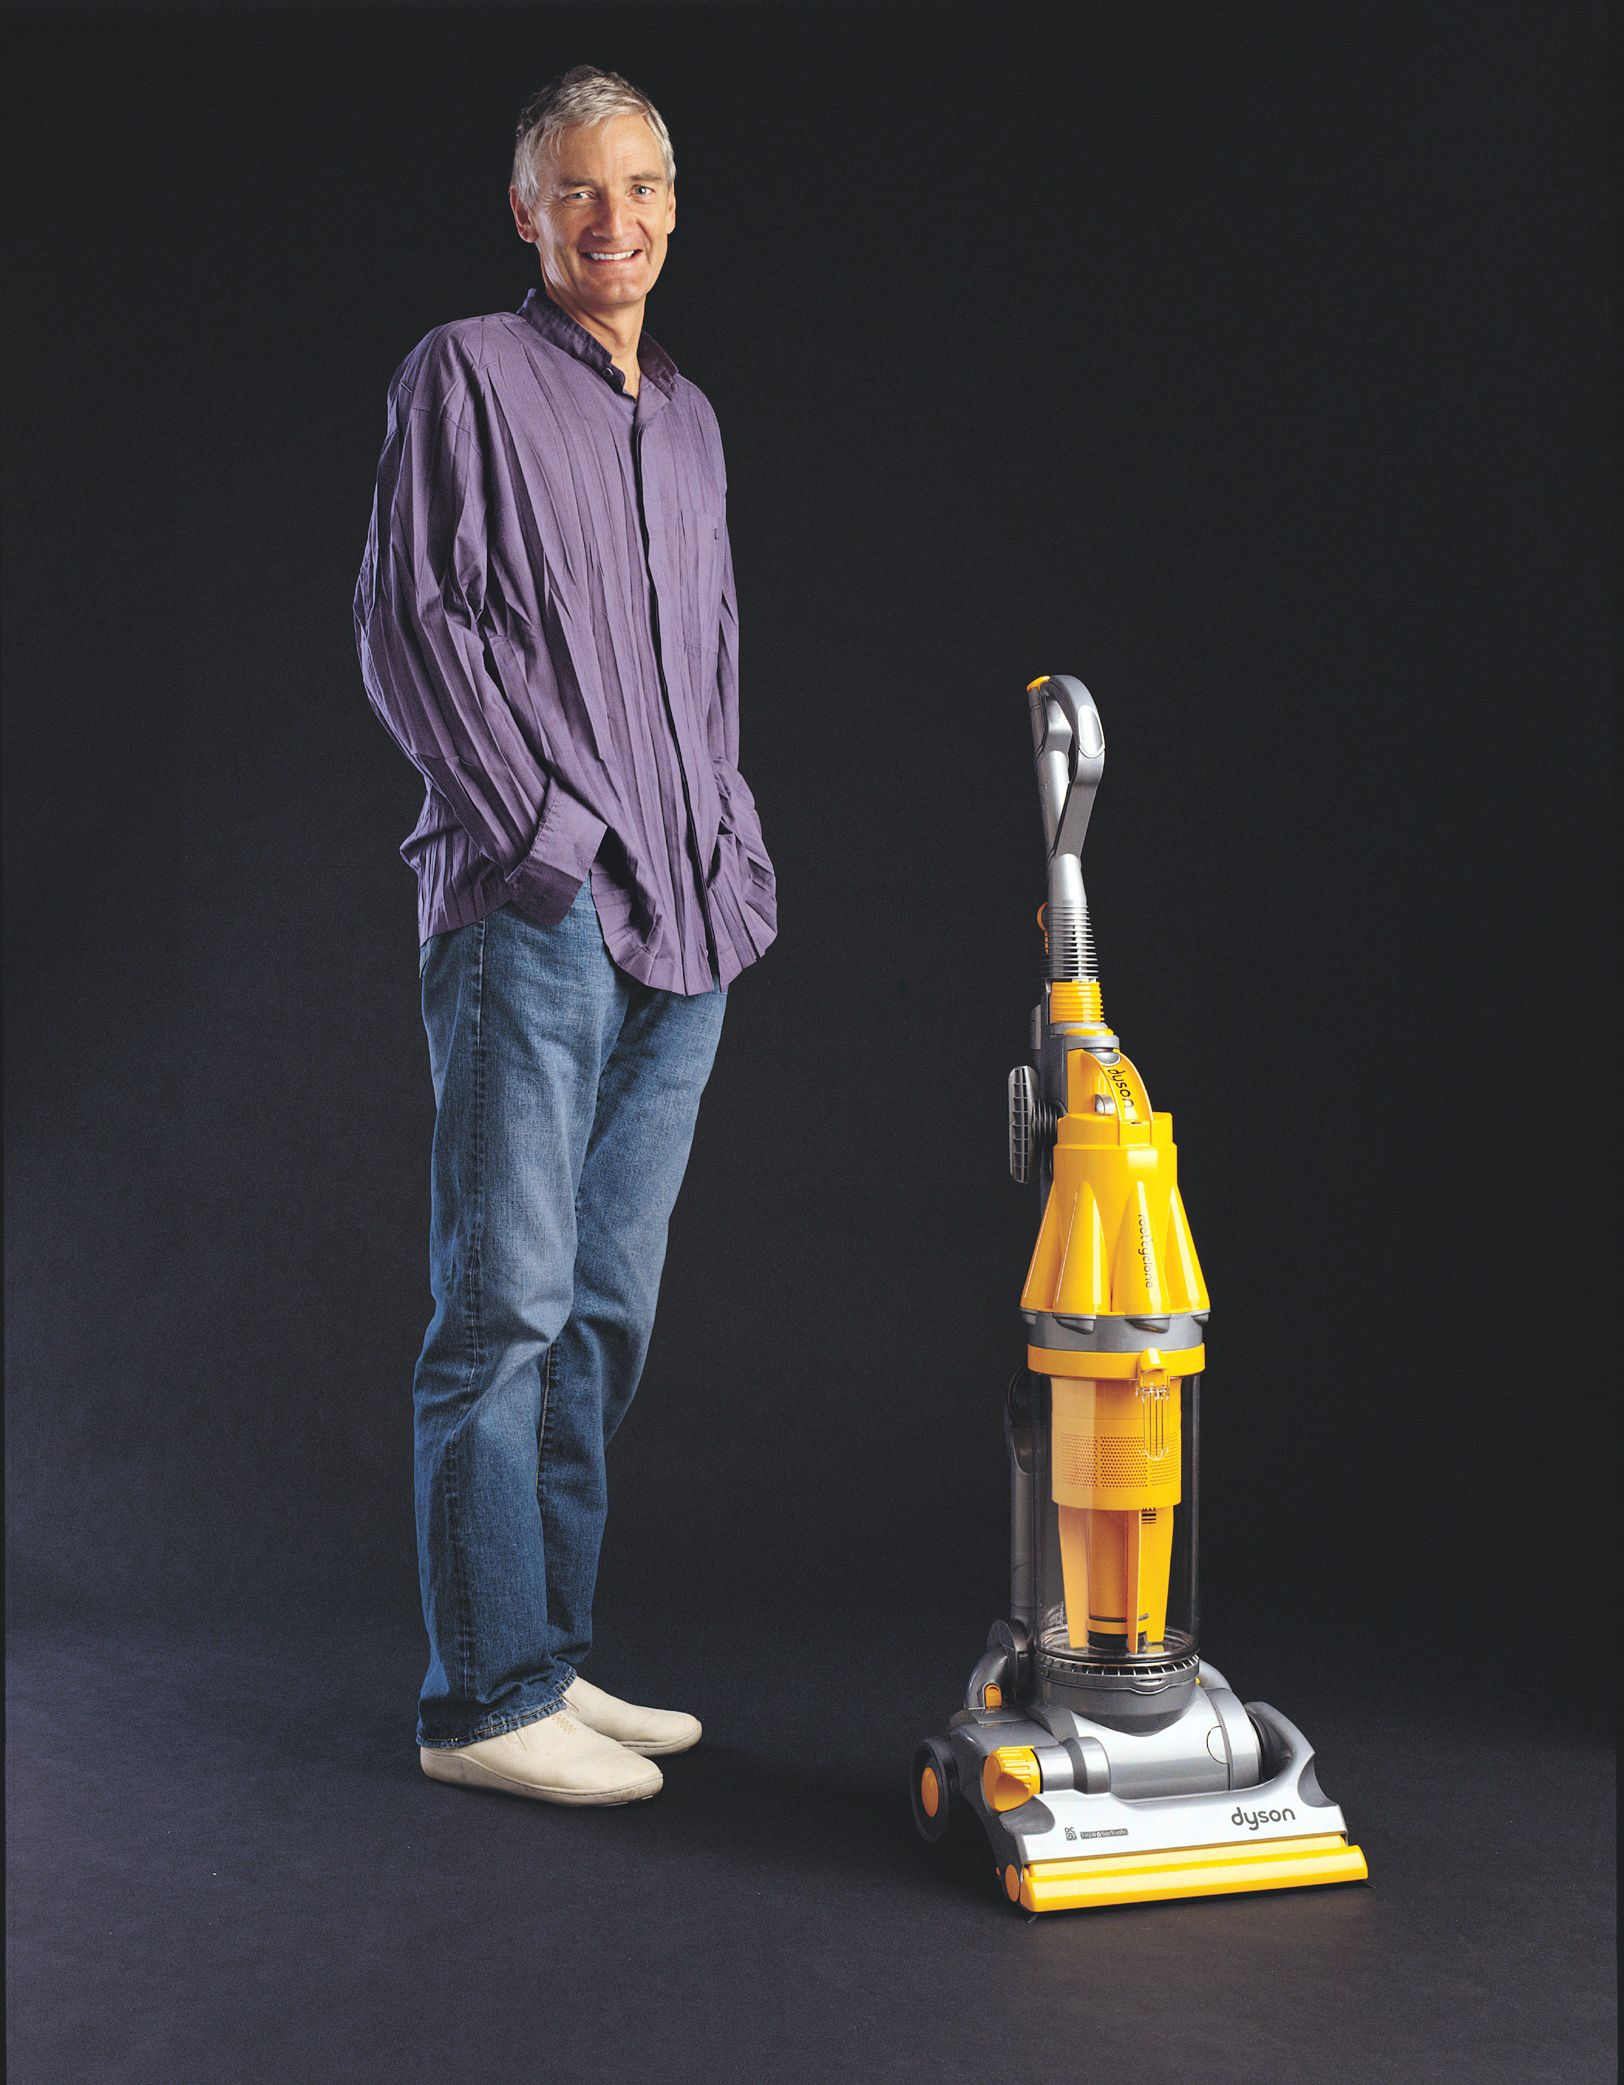 James Dyson, founder and chairman of Dyson Ltd.